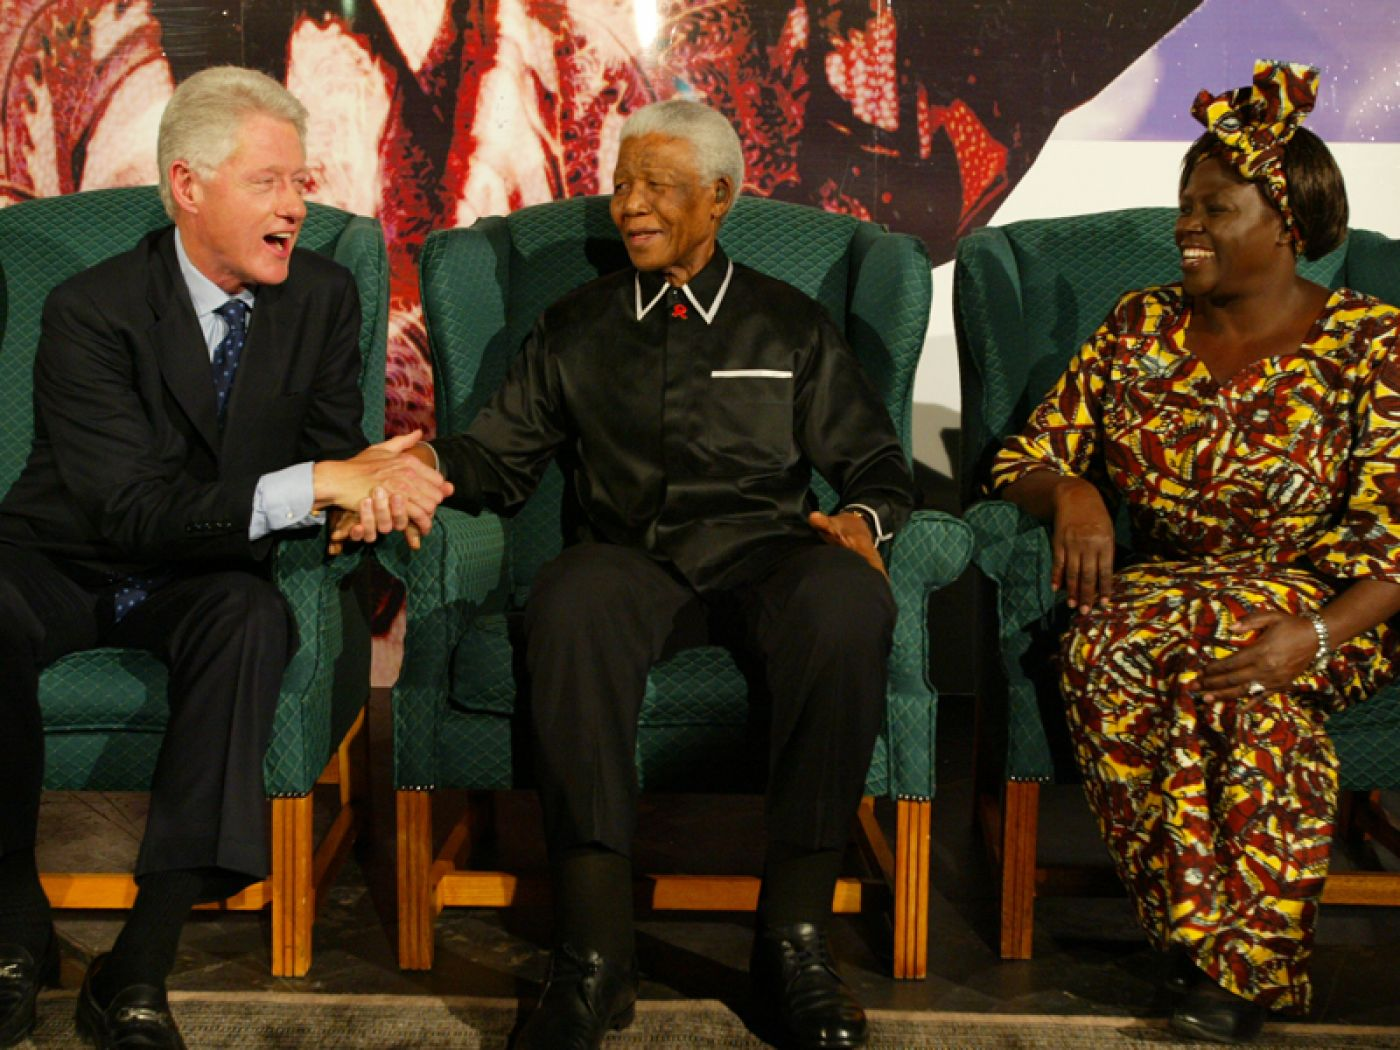 President Bill Clinton, Mr Nelson Mandela and Prof Wangari Maathai at the lecture